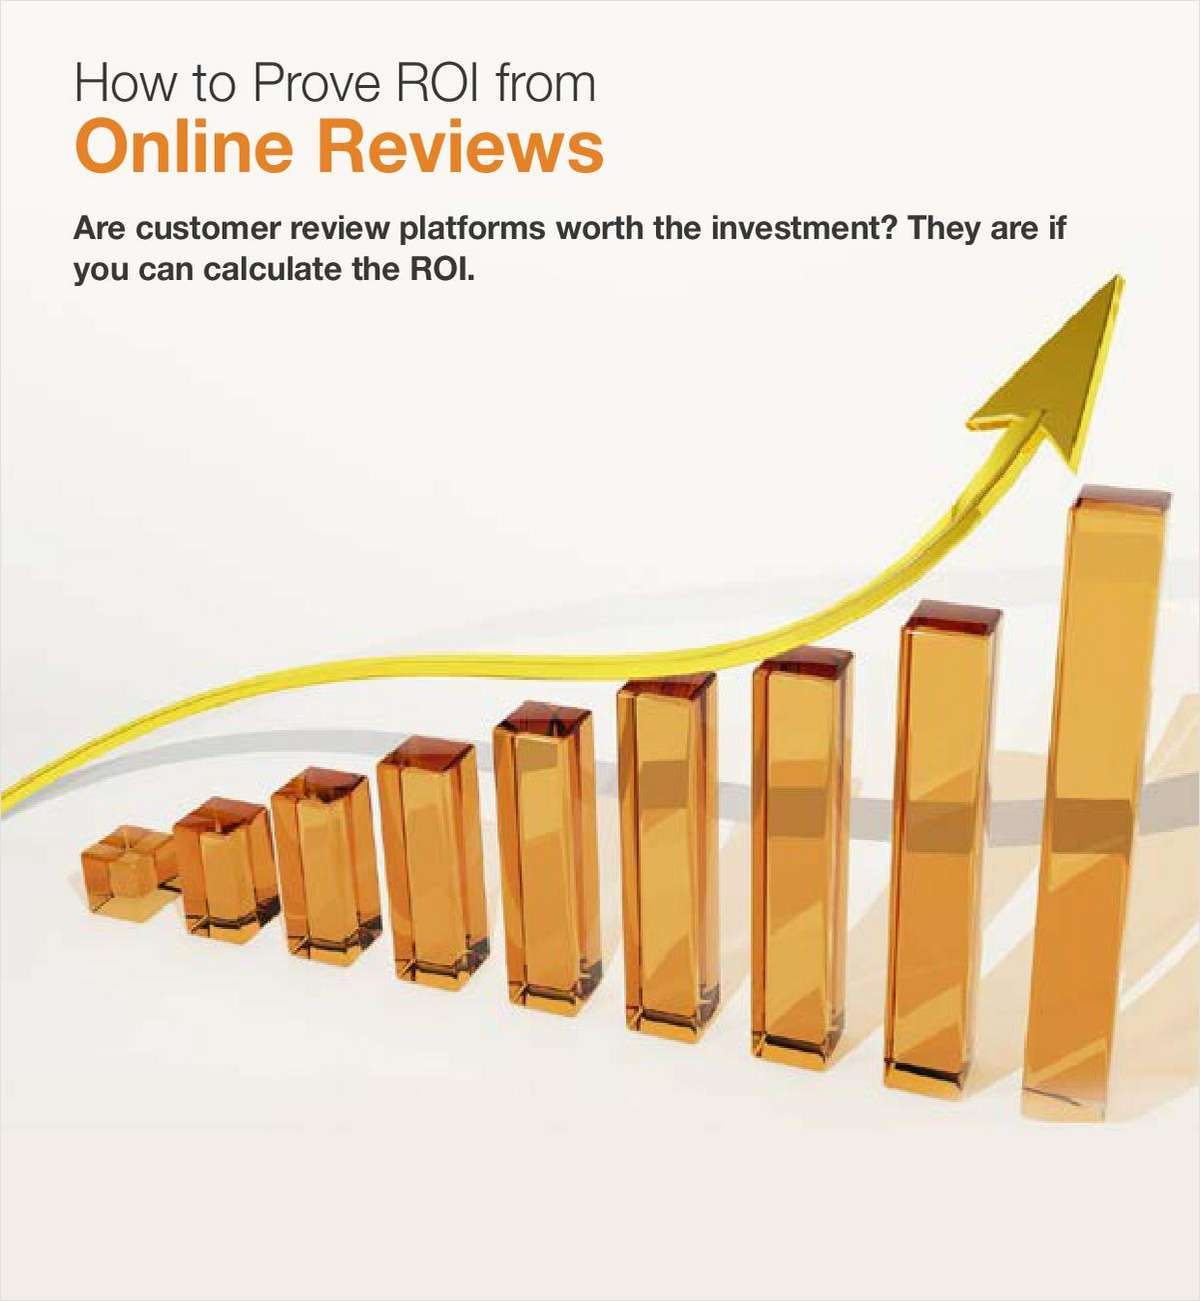 Best Practices to Prove ROI from Online Reviews